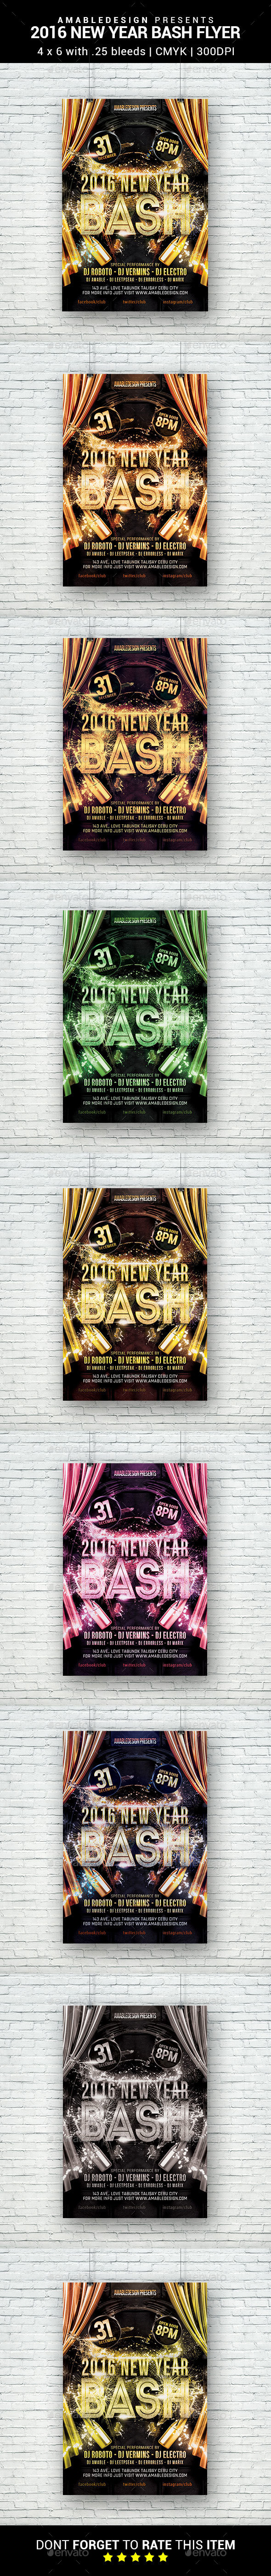 2016/2017 New Year Bash Flyer - Holidays Events